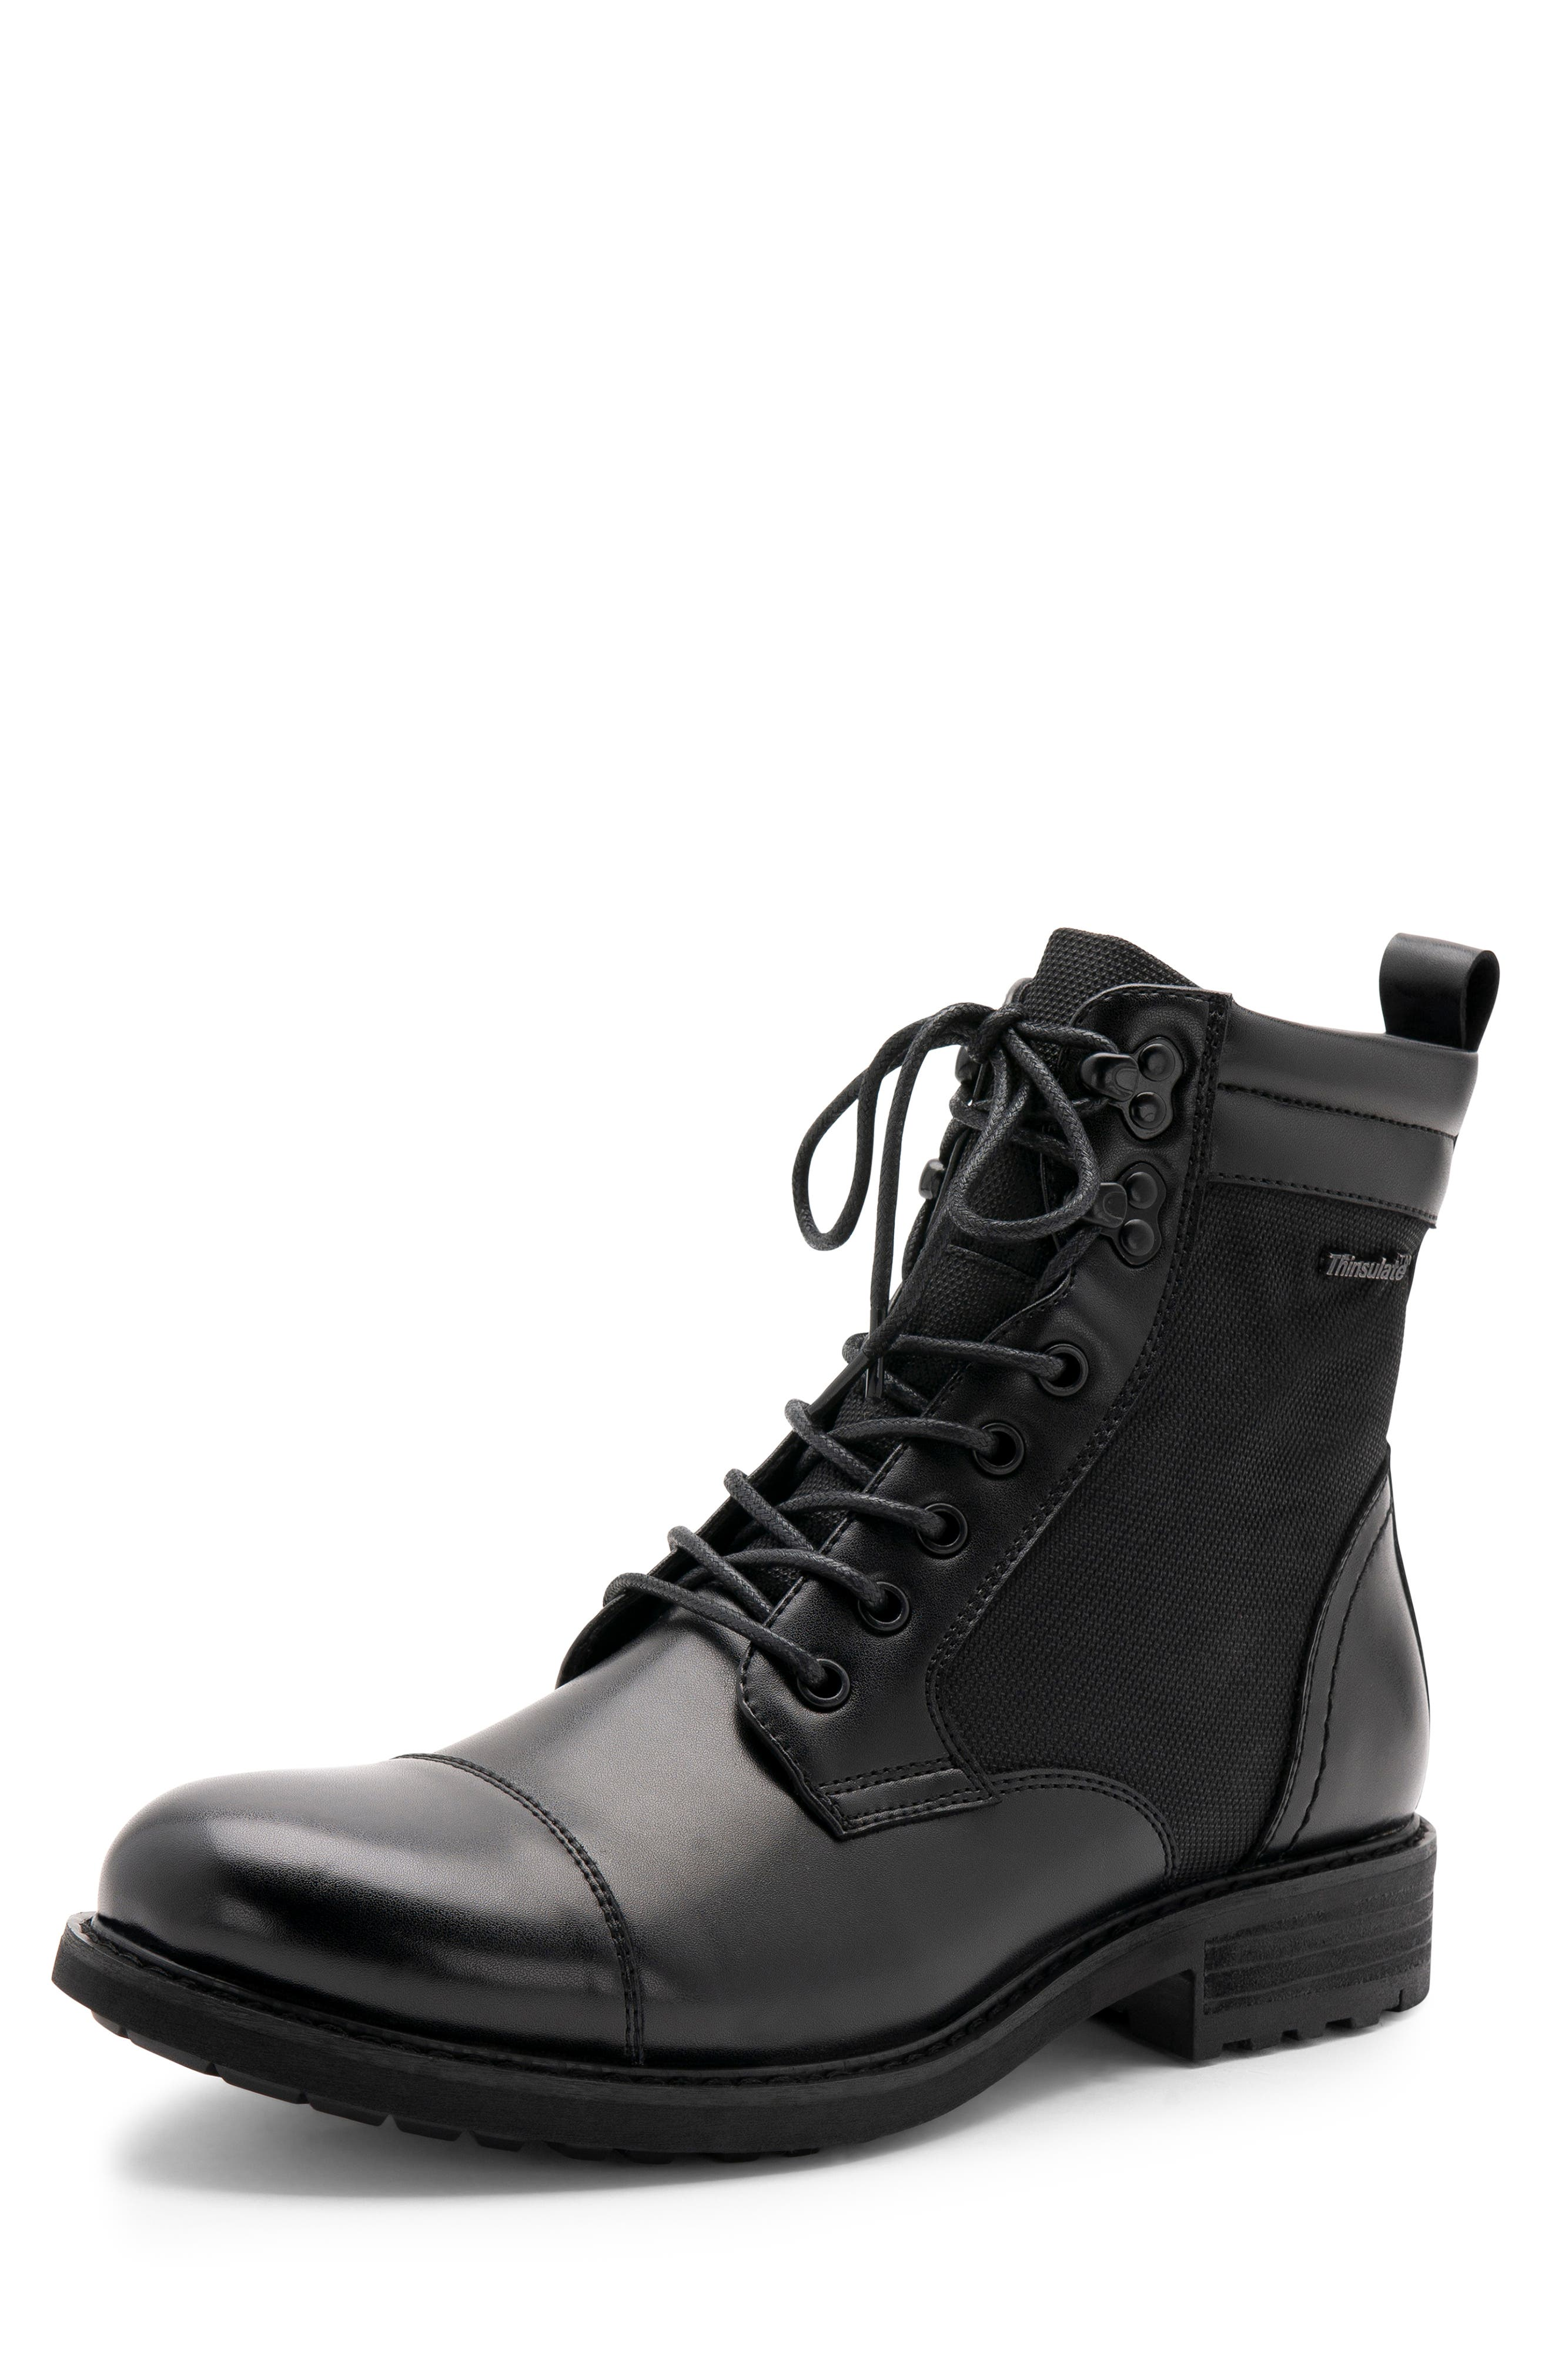 Paxton Waterproof Cap Toe Boot,                             Alternate thumbnail 8, color,                             BLACK LEATHER